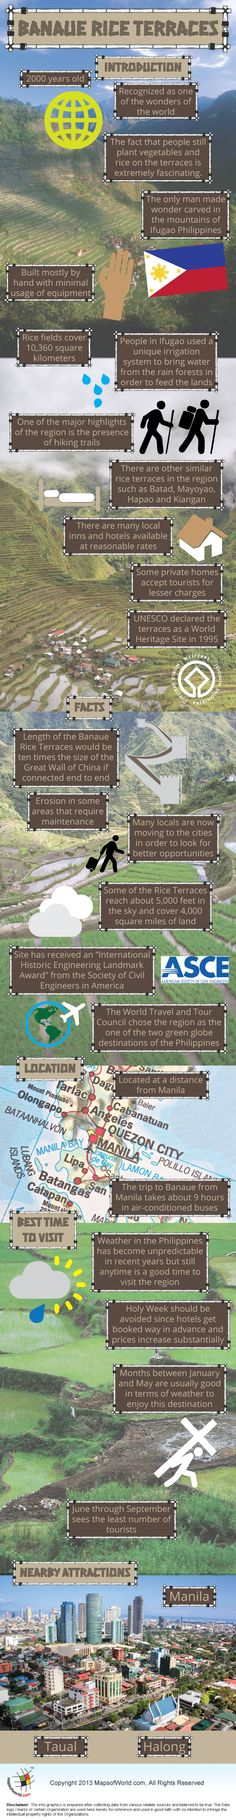 Banaue Rice Terraces #Infographic